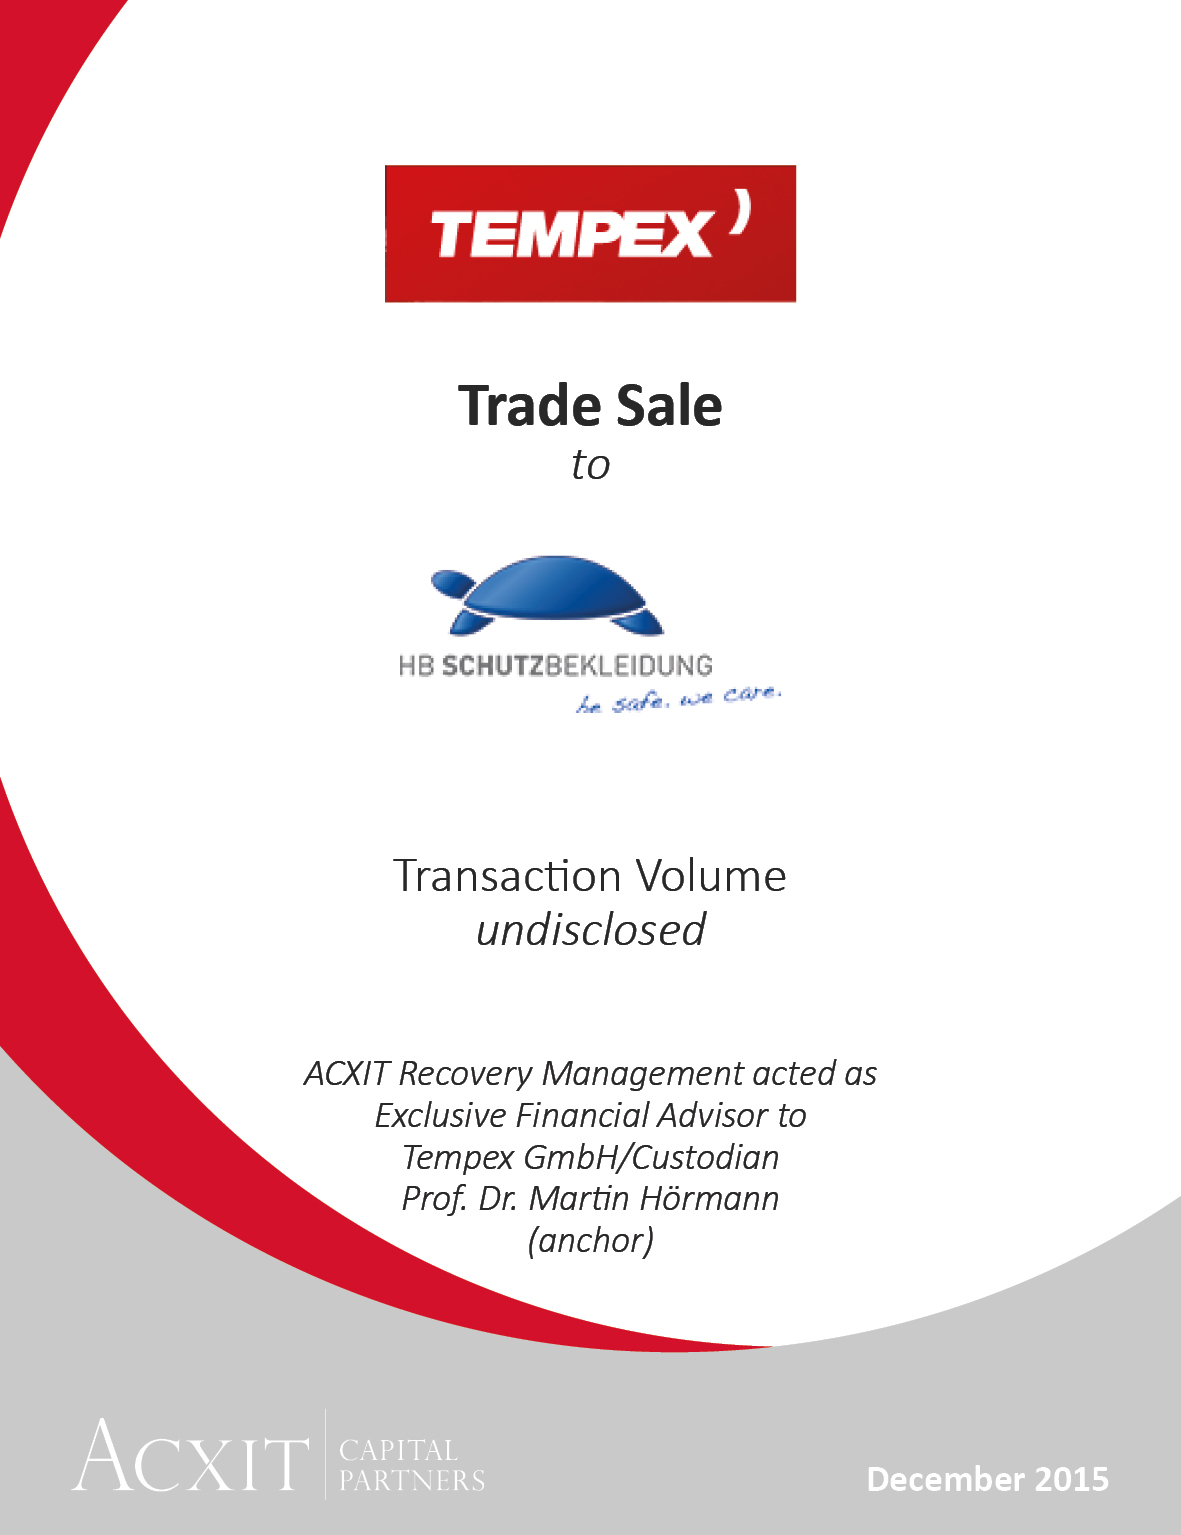 HB Schutzbekleidung acquires main product segments and registered trademarks of Tempex